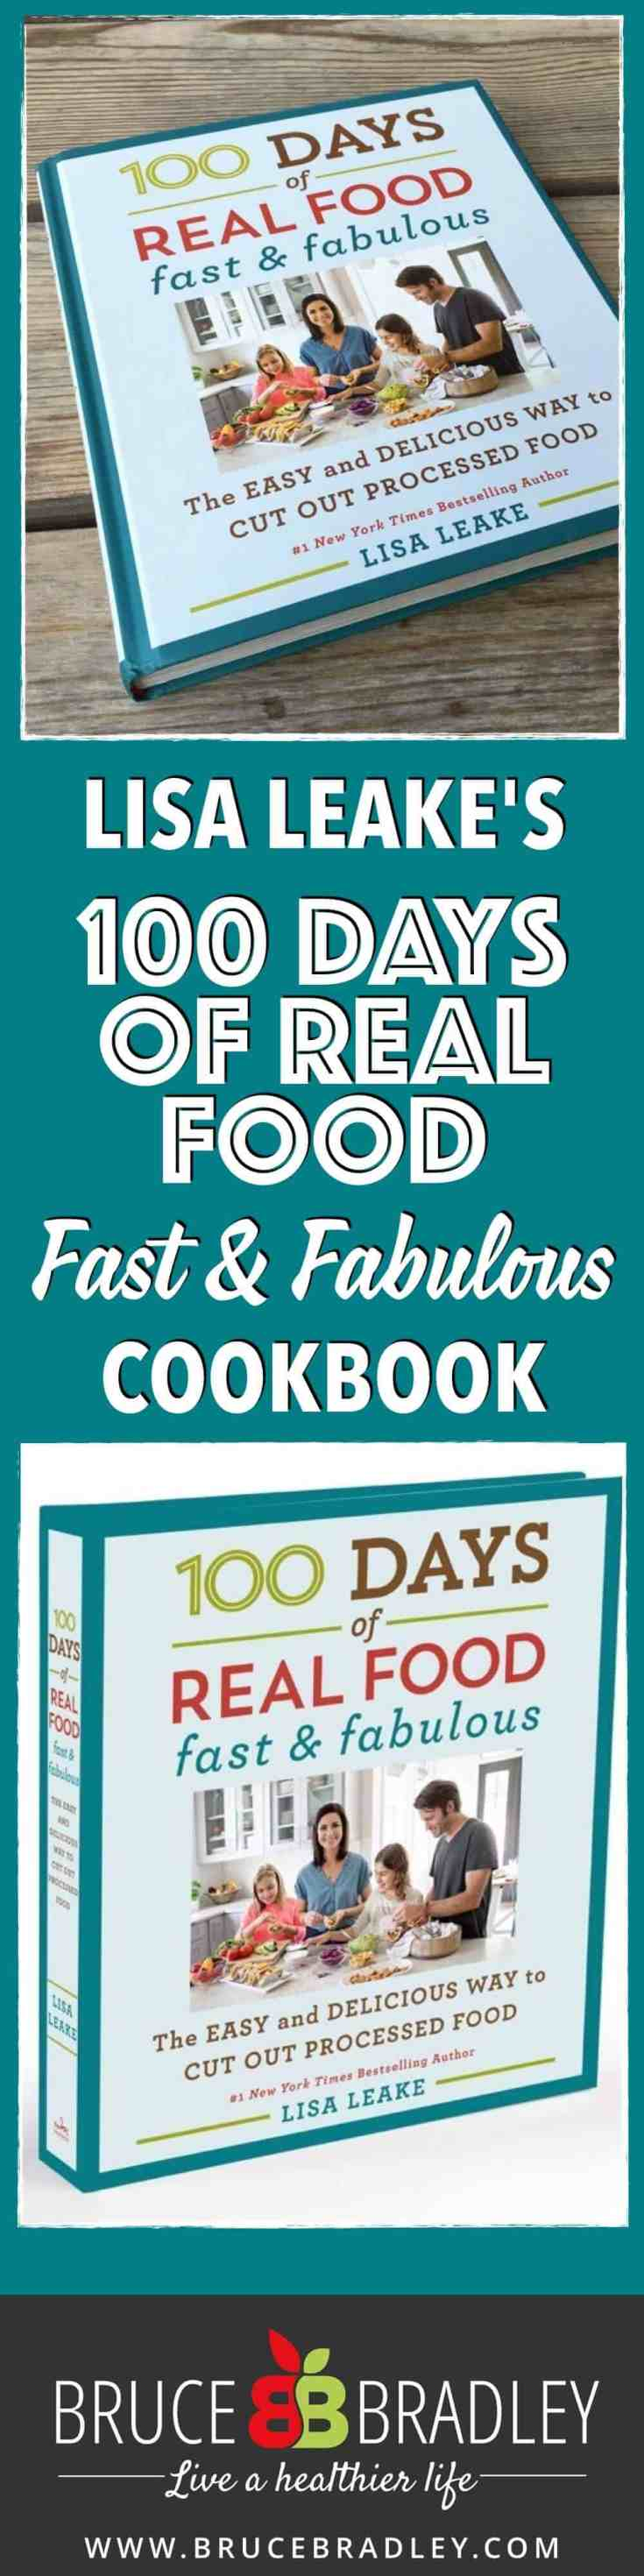 100 Days of Real Food Fast and Fabulous Cookbook is filled with over 100 quick-and-easy recipes and simple cheat sheets to help your family eat real food without derailing your busy life. With simple recipes for breakfast, lunch, dinner, snacks, and special treats, you truly can't go wrong with this cookbook.